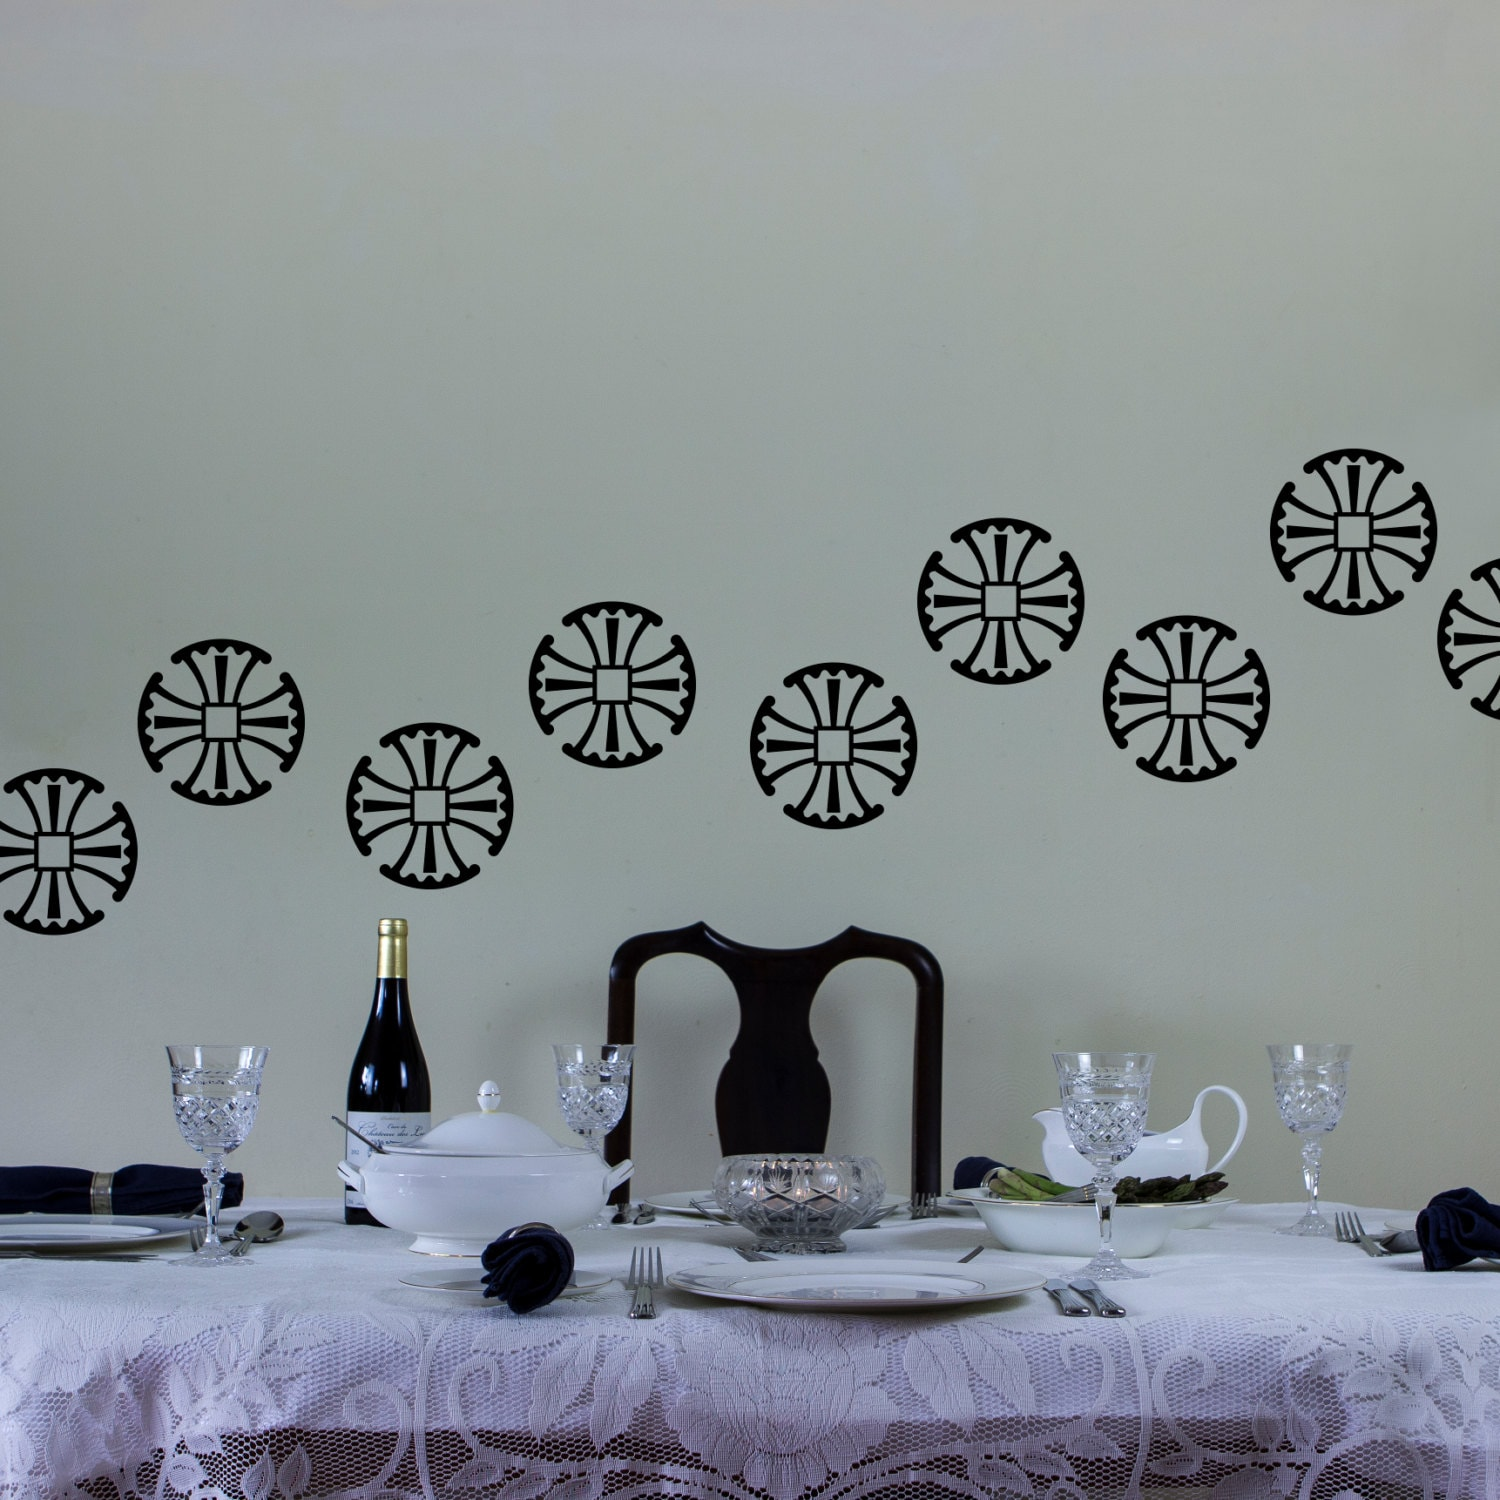 Fan Cross Wall Art Decal Pack